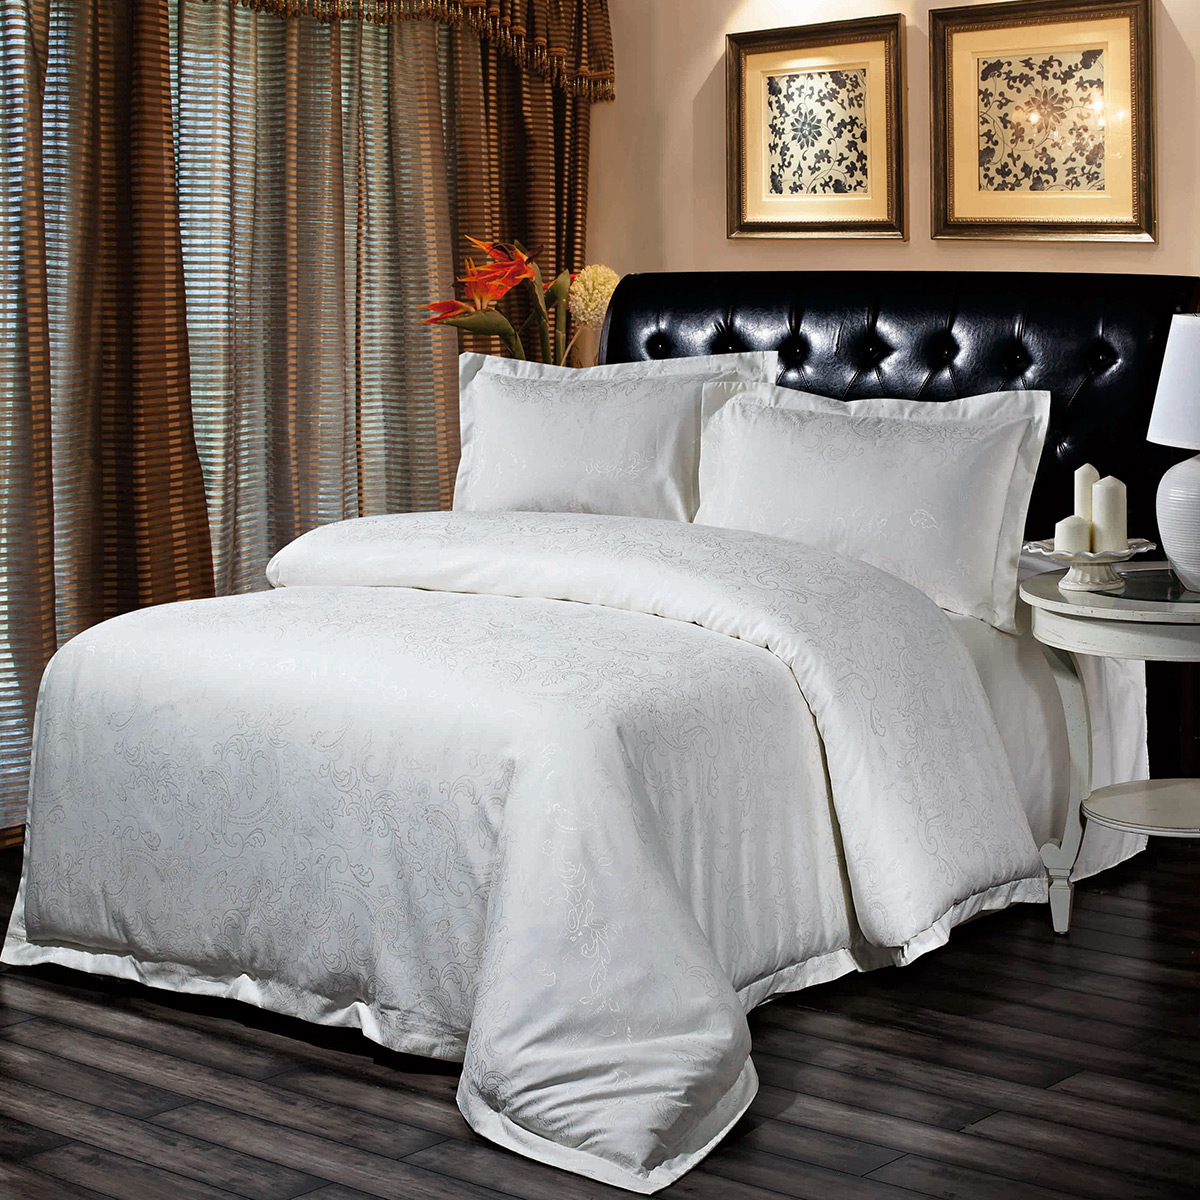 Luxury Hotel Bedding Sets.European Damask Jacquard Bedding Set Queen Size Luxury